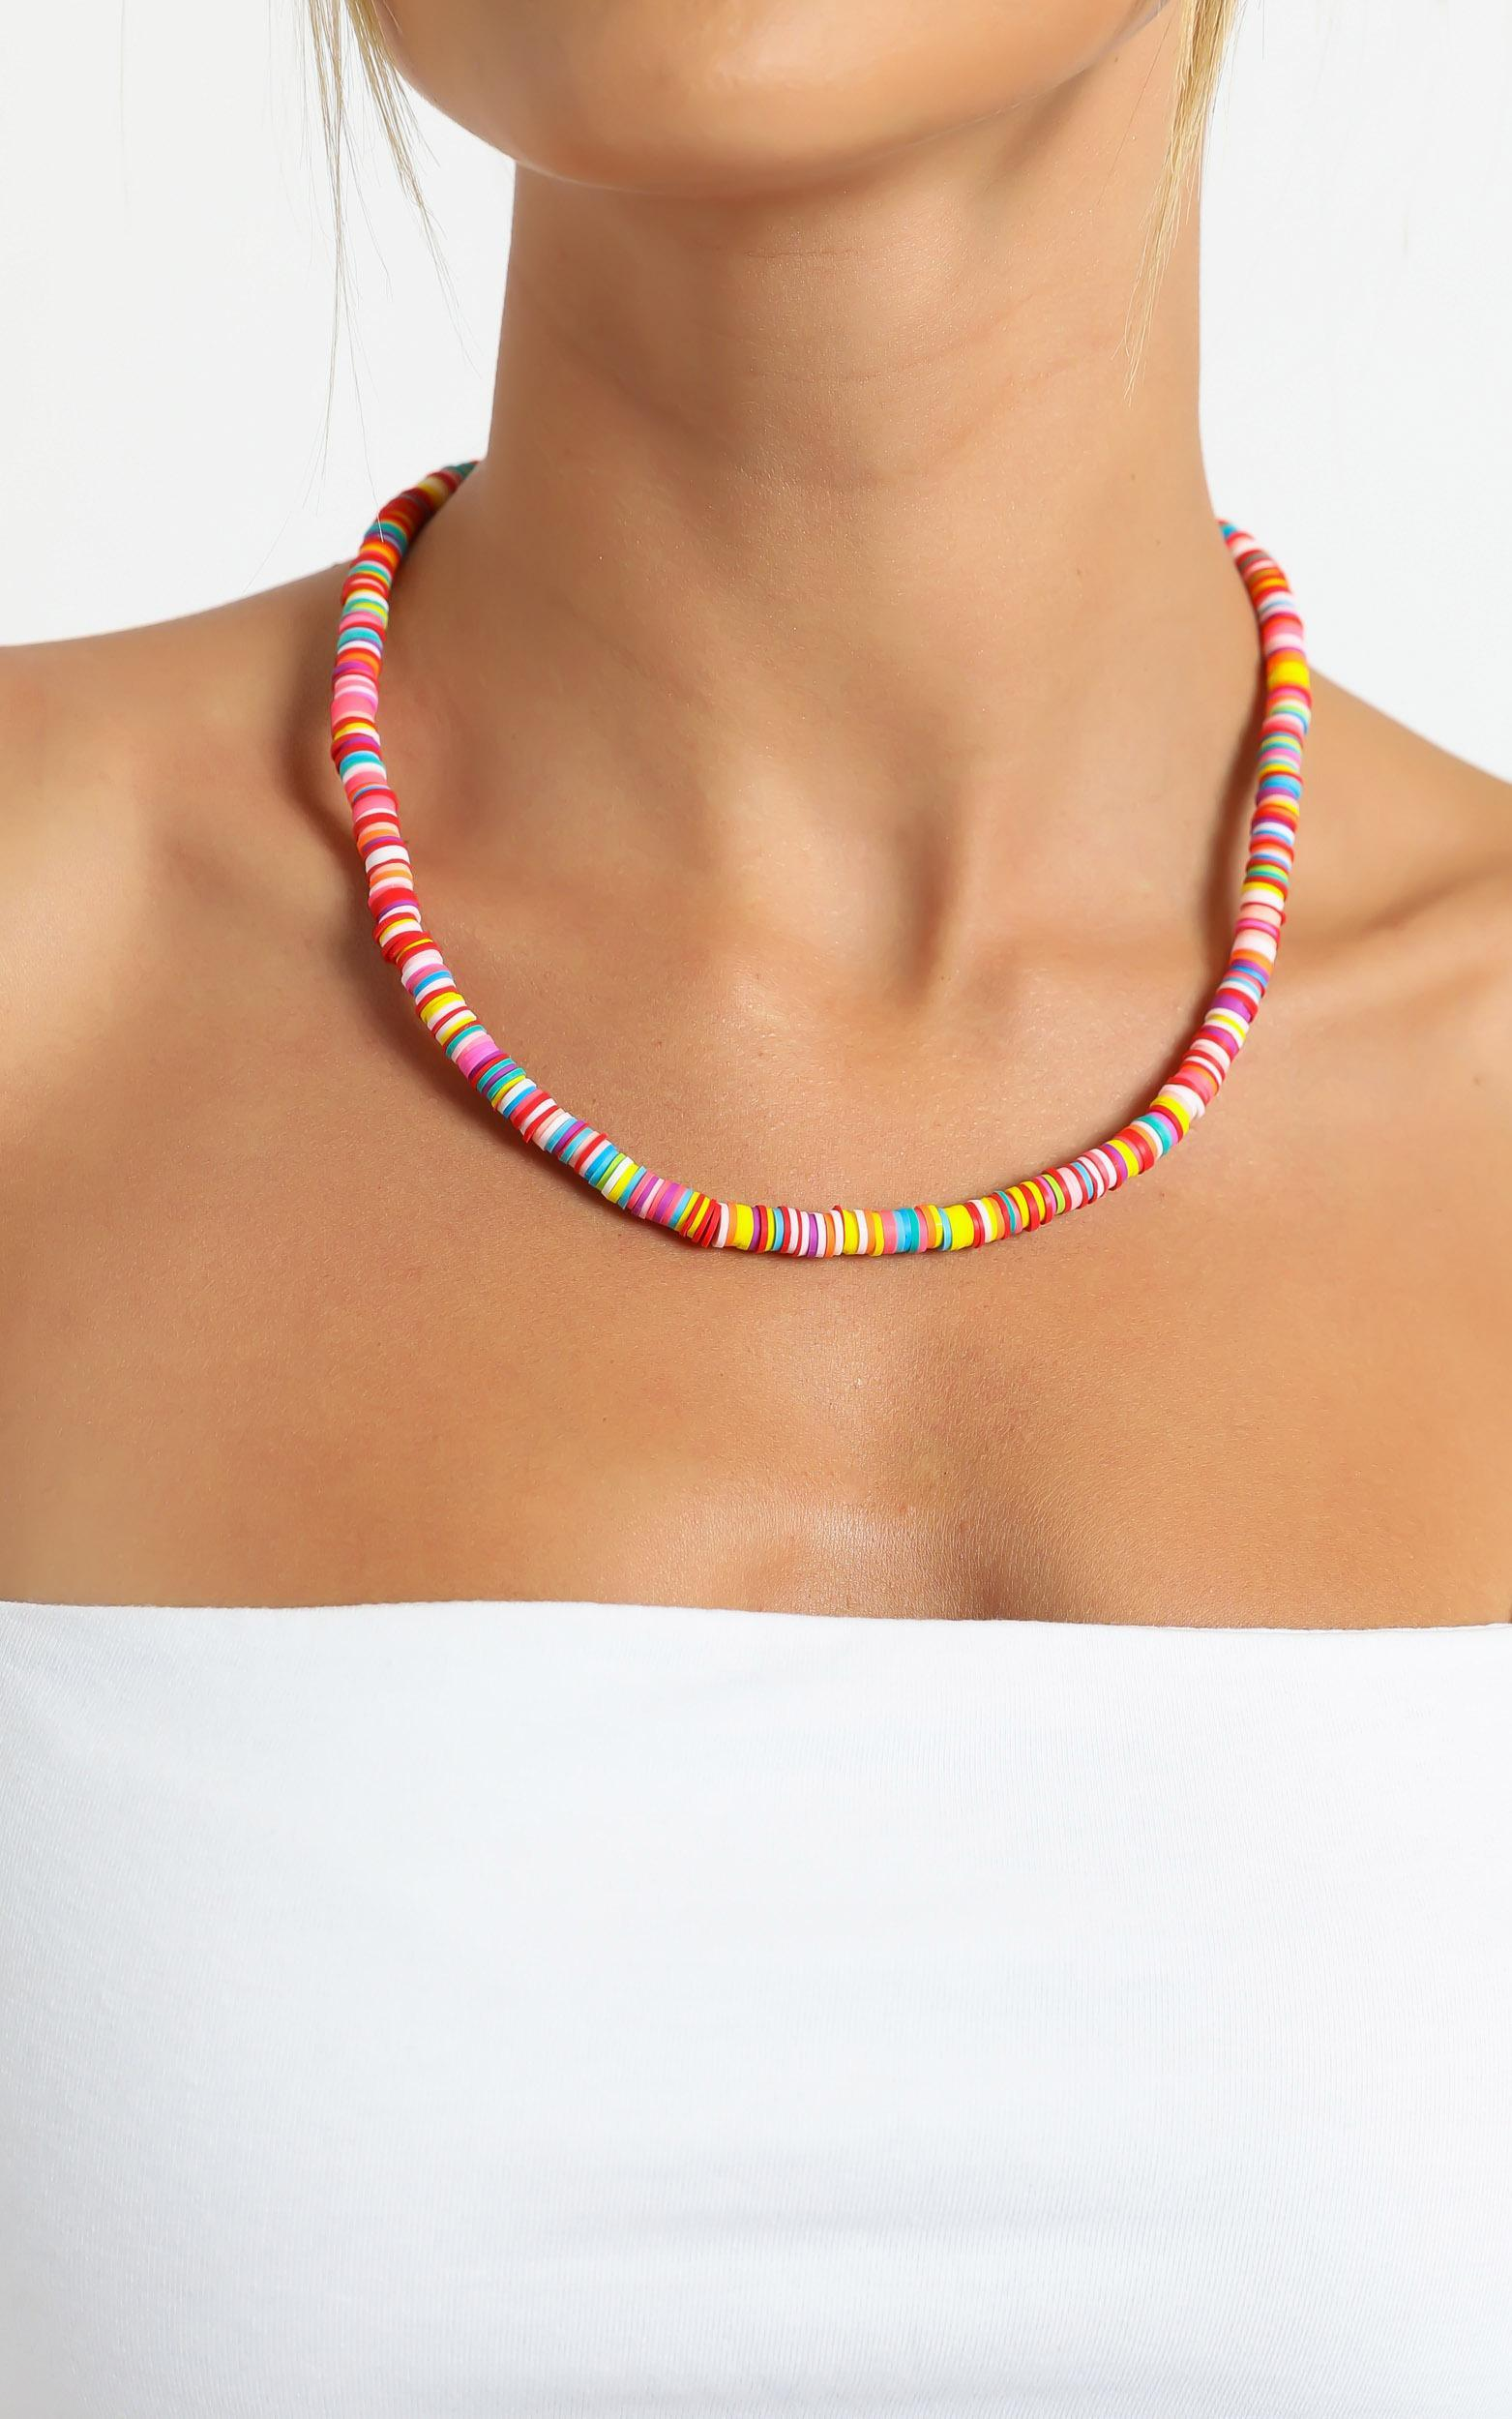 Beaded Necklace in Multi, , hi-res image number null